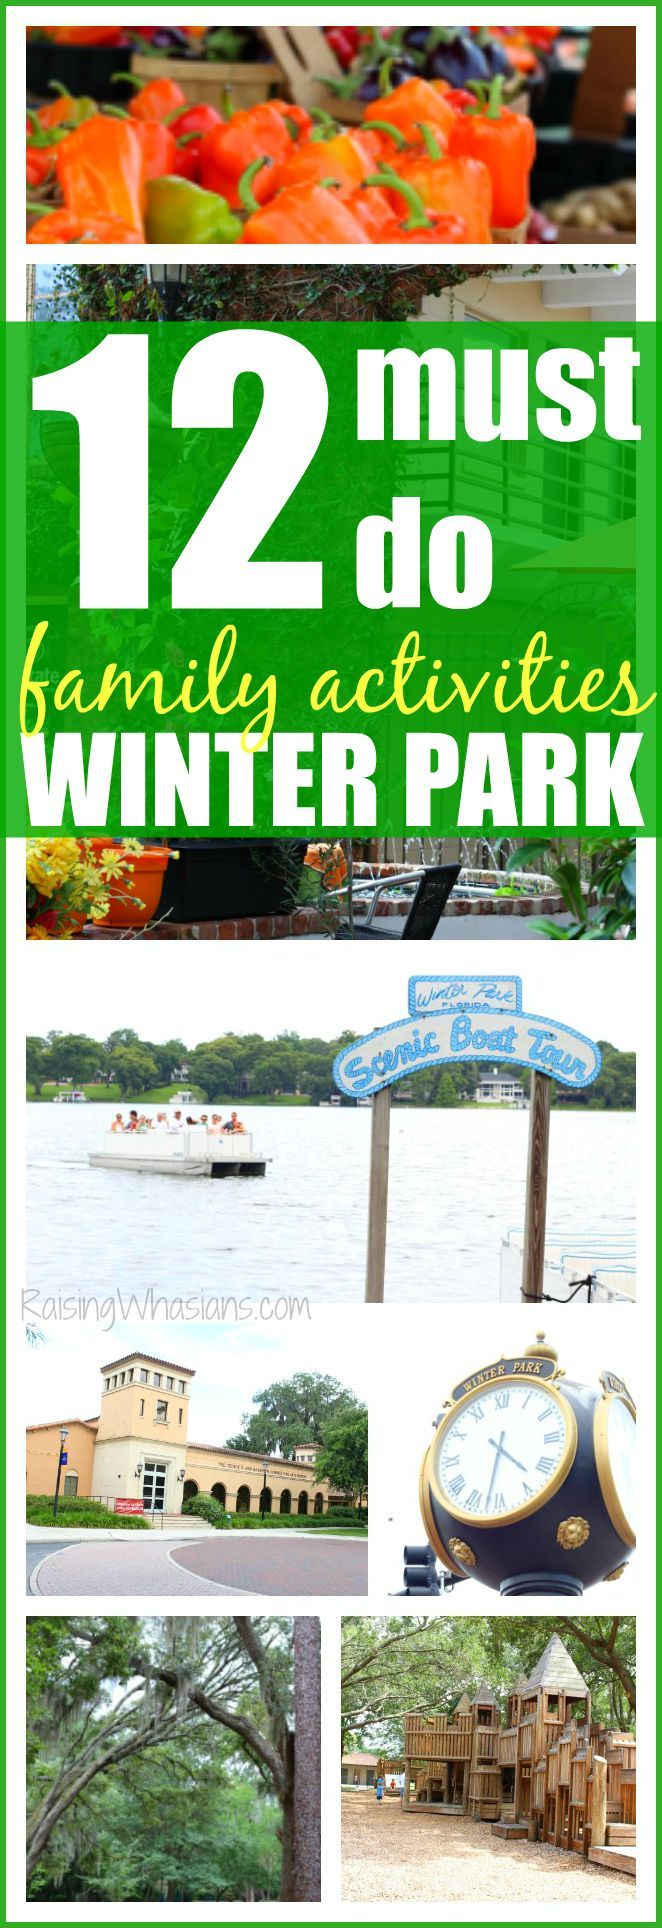 12 Winter Park Family Activities for Your Next Visit | travel to Winter Park, Florida just next door to Orlando with these family-friendly activities #LoveFL #ad @VISITFLORIDA